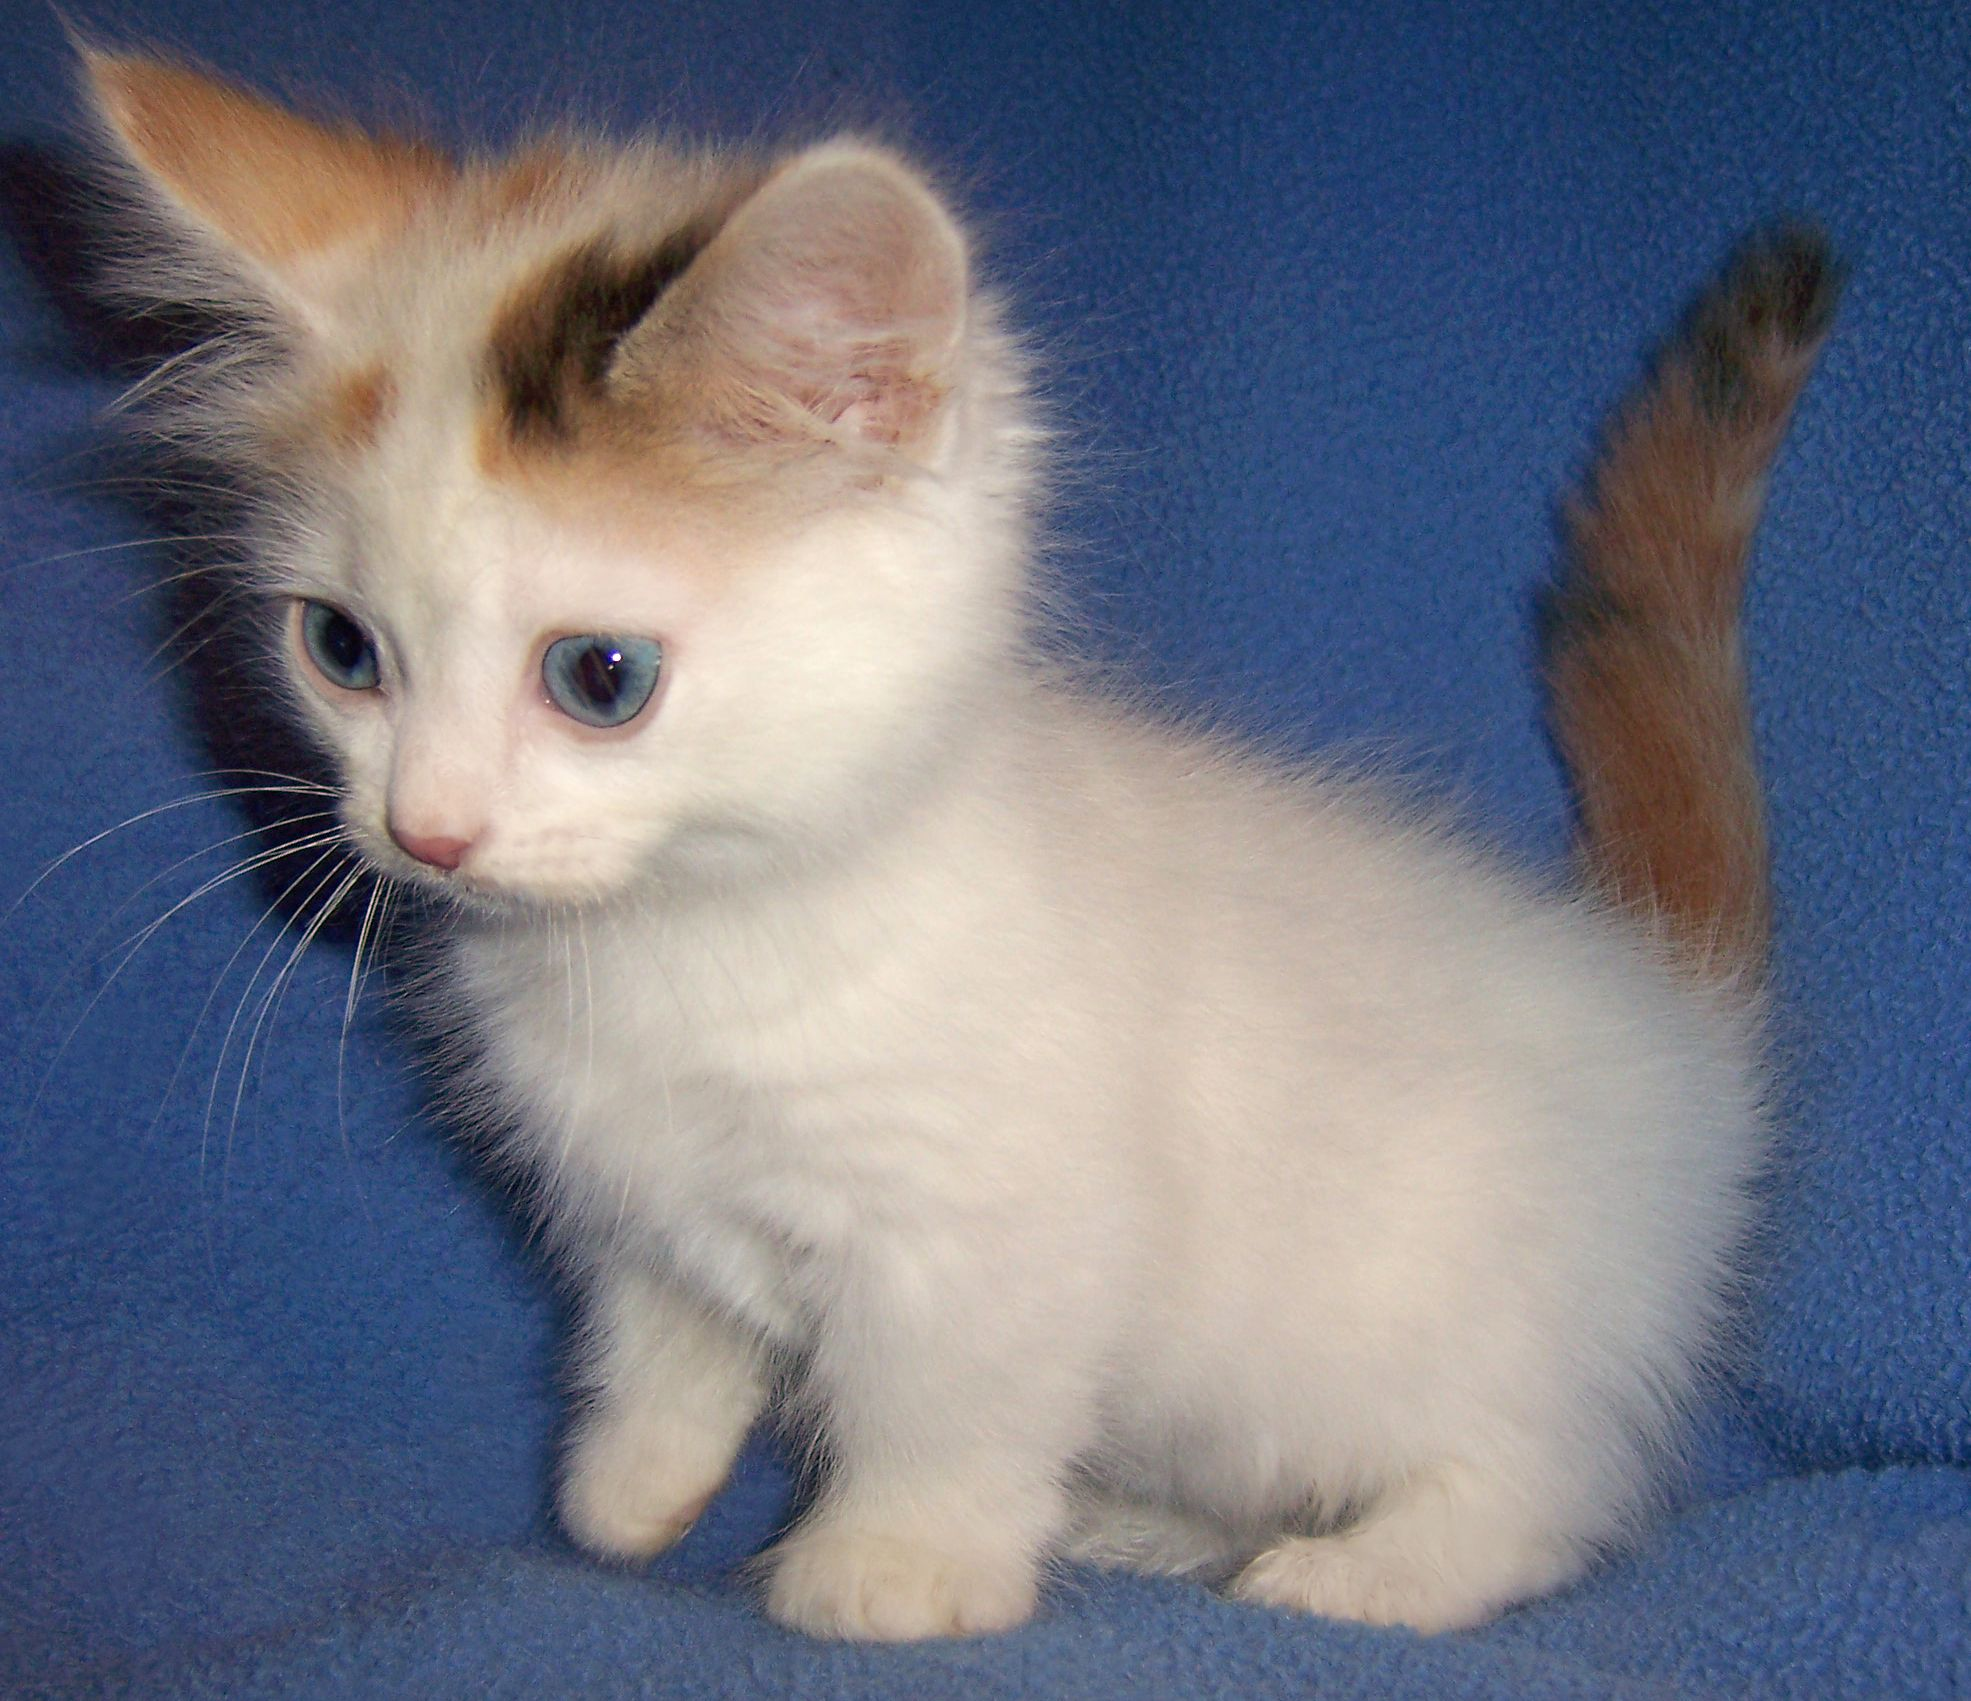 Munchkin Kittens Available | At Mountaineer Munchkins we ...